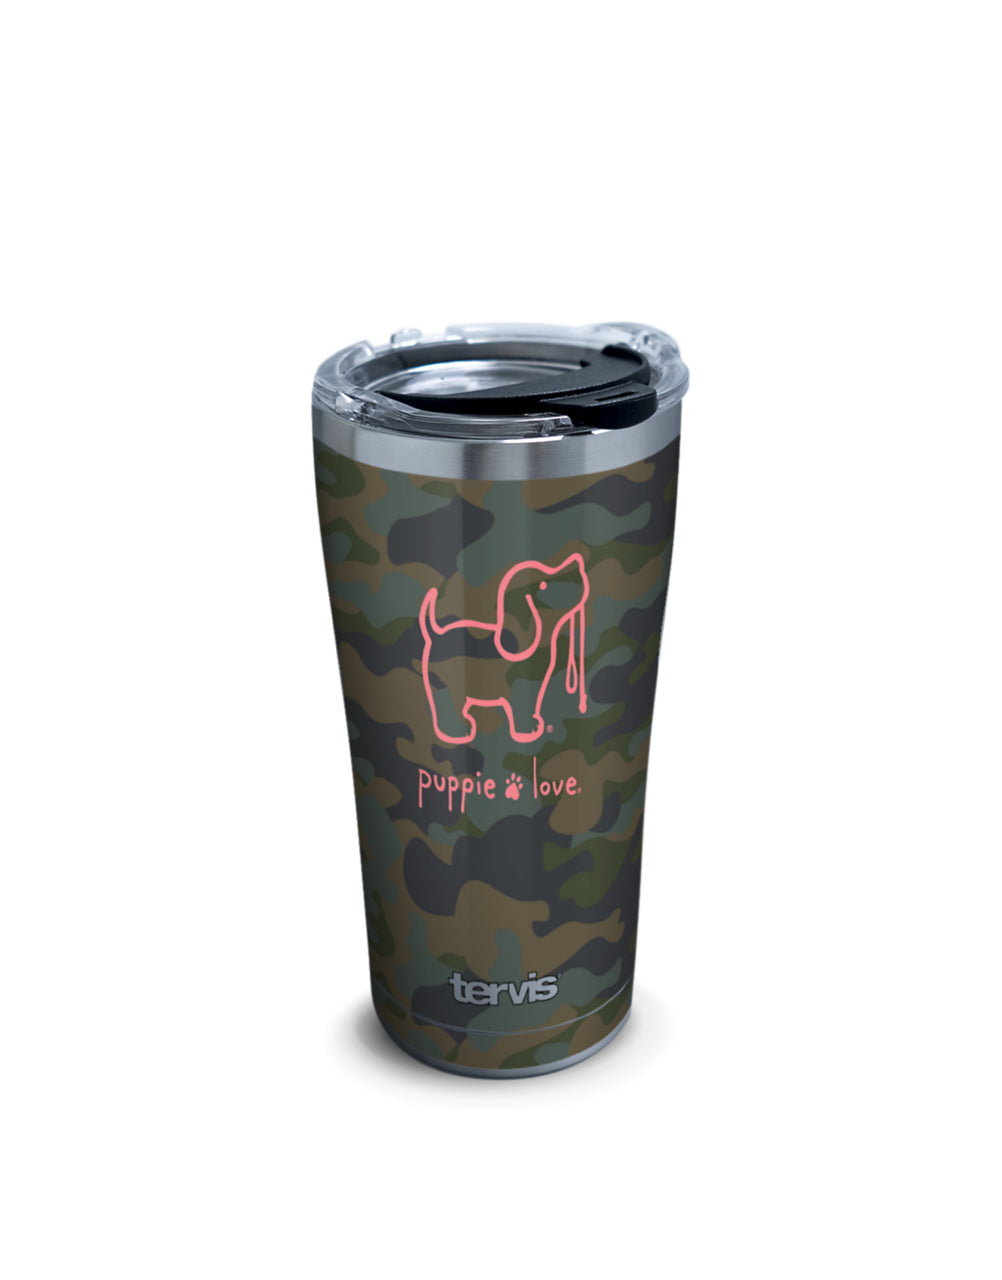 CAMO PUP 20oz STAINLESS STEEL TUMBLER - Puppie Love